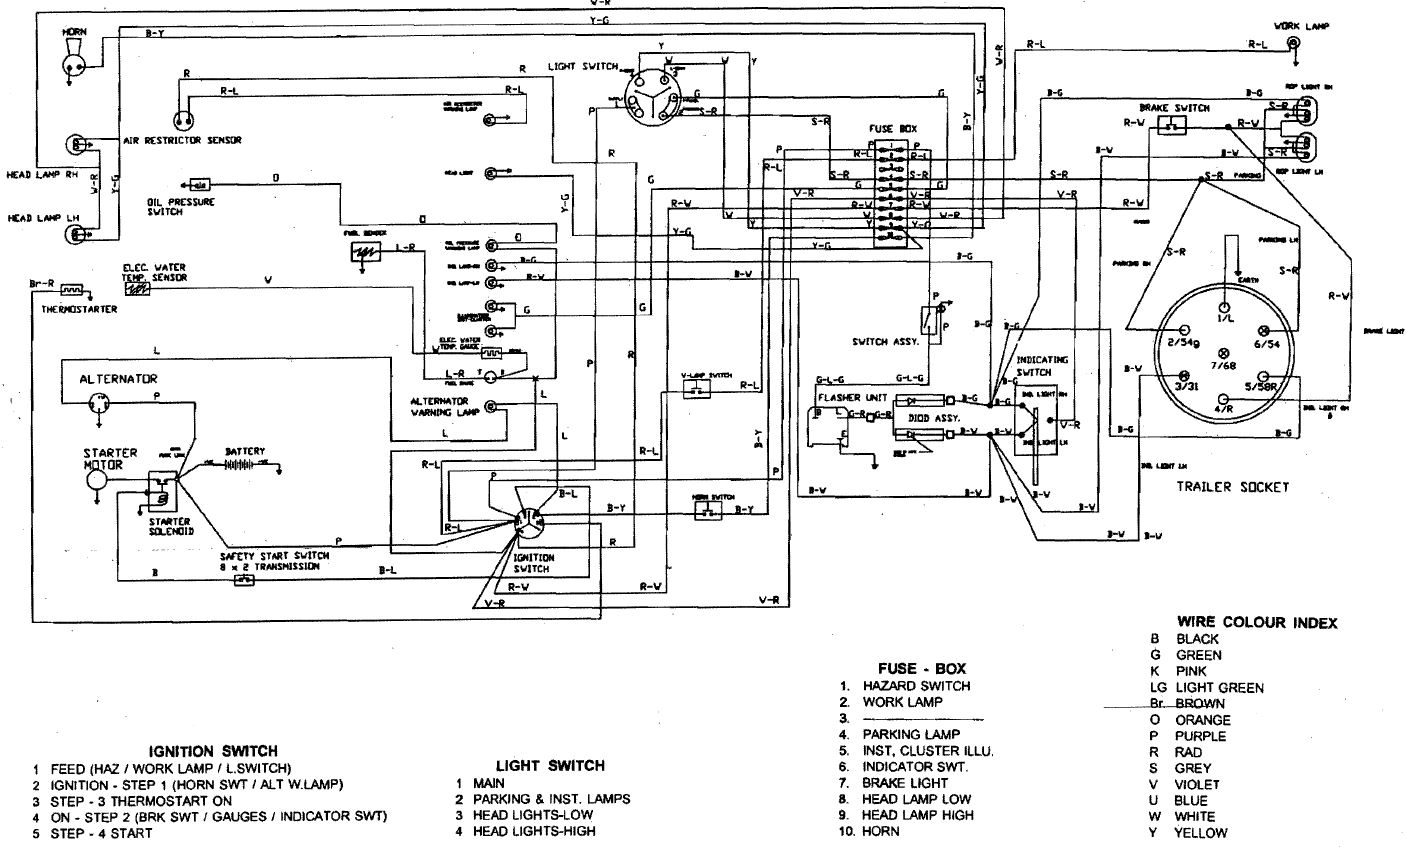 20158463319_b82d524c3d_o ignition switch wiring diagram bobcat wiring diagram free at honlapkeszites.co